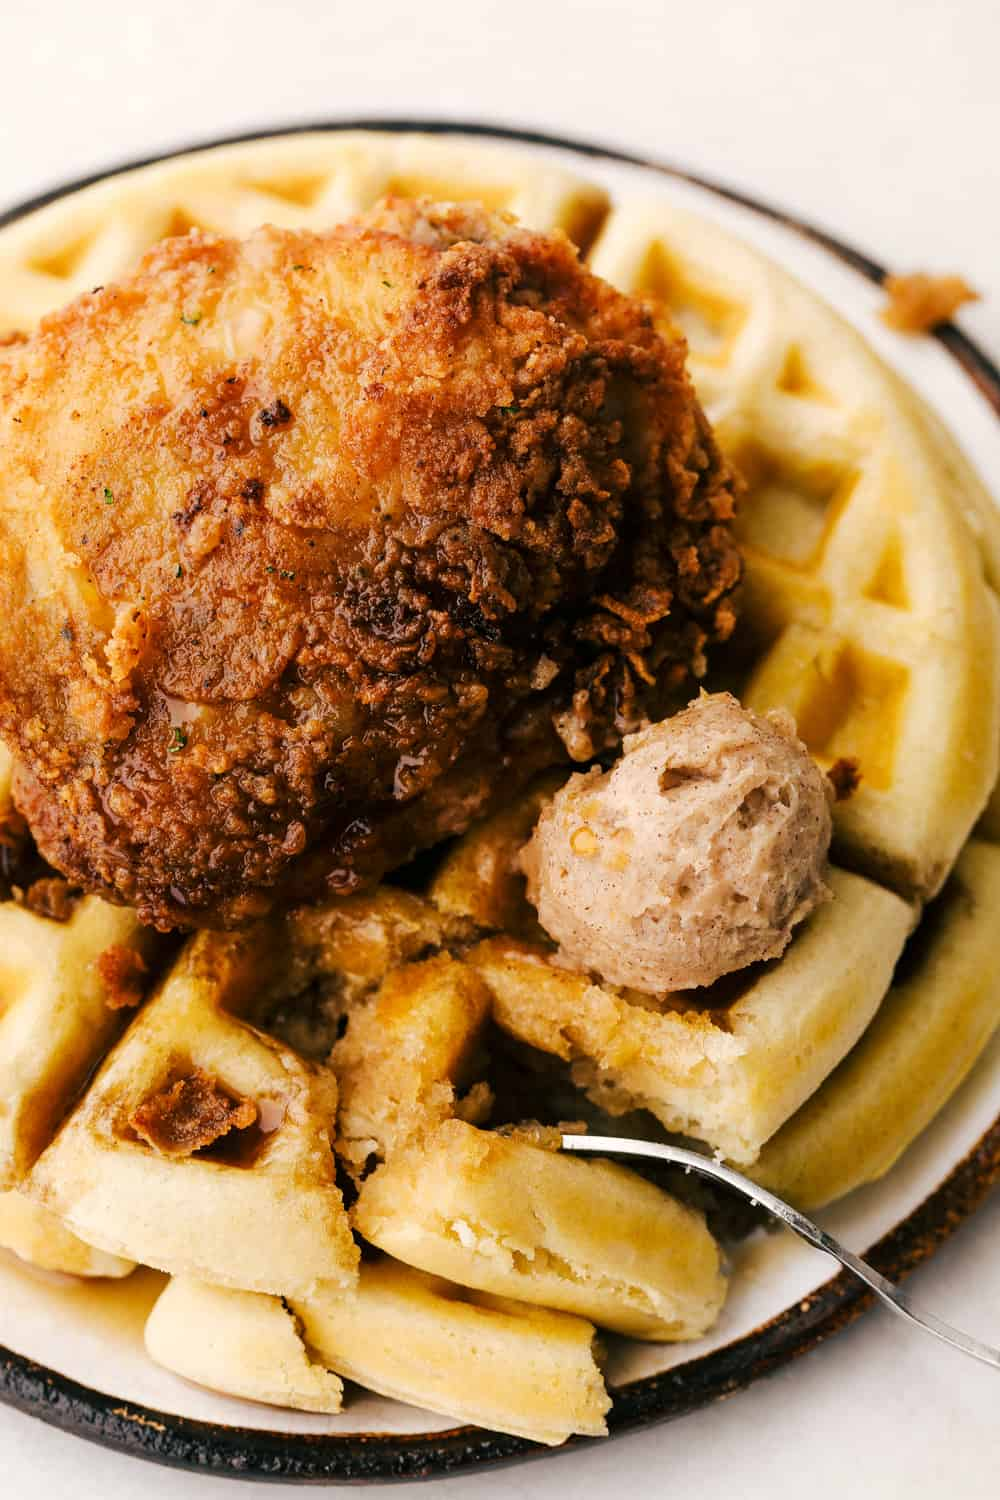 Chicken and waffles on a plate with cinnamon butter, syrup with a bite on a fork.